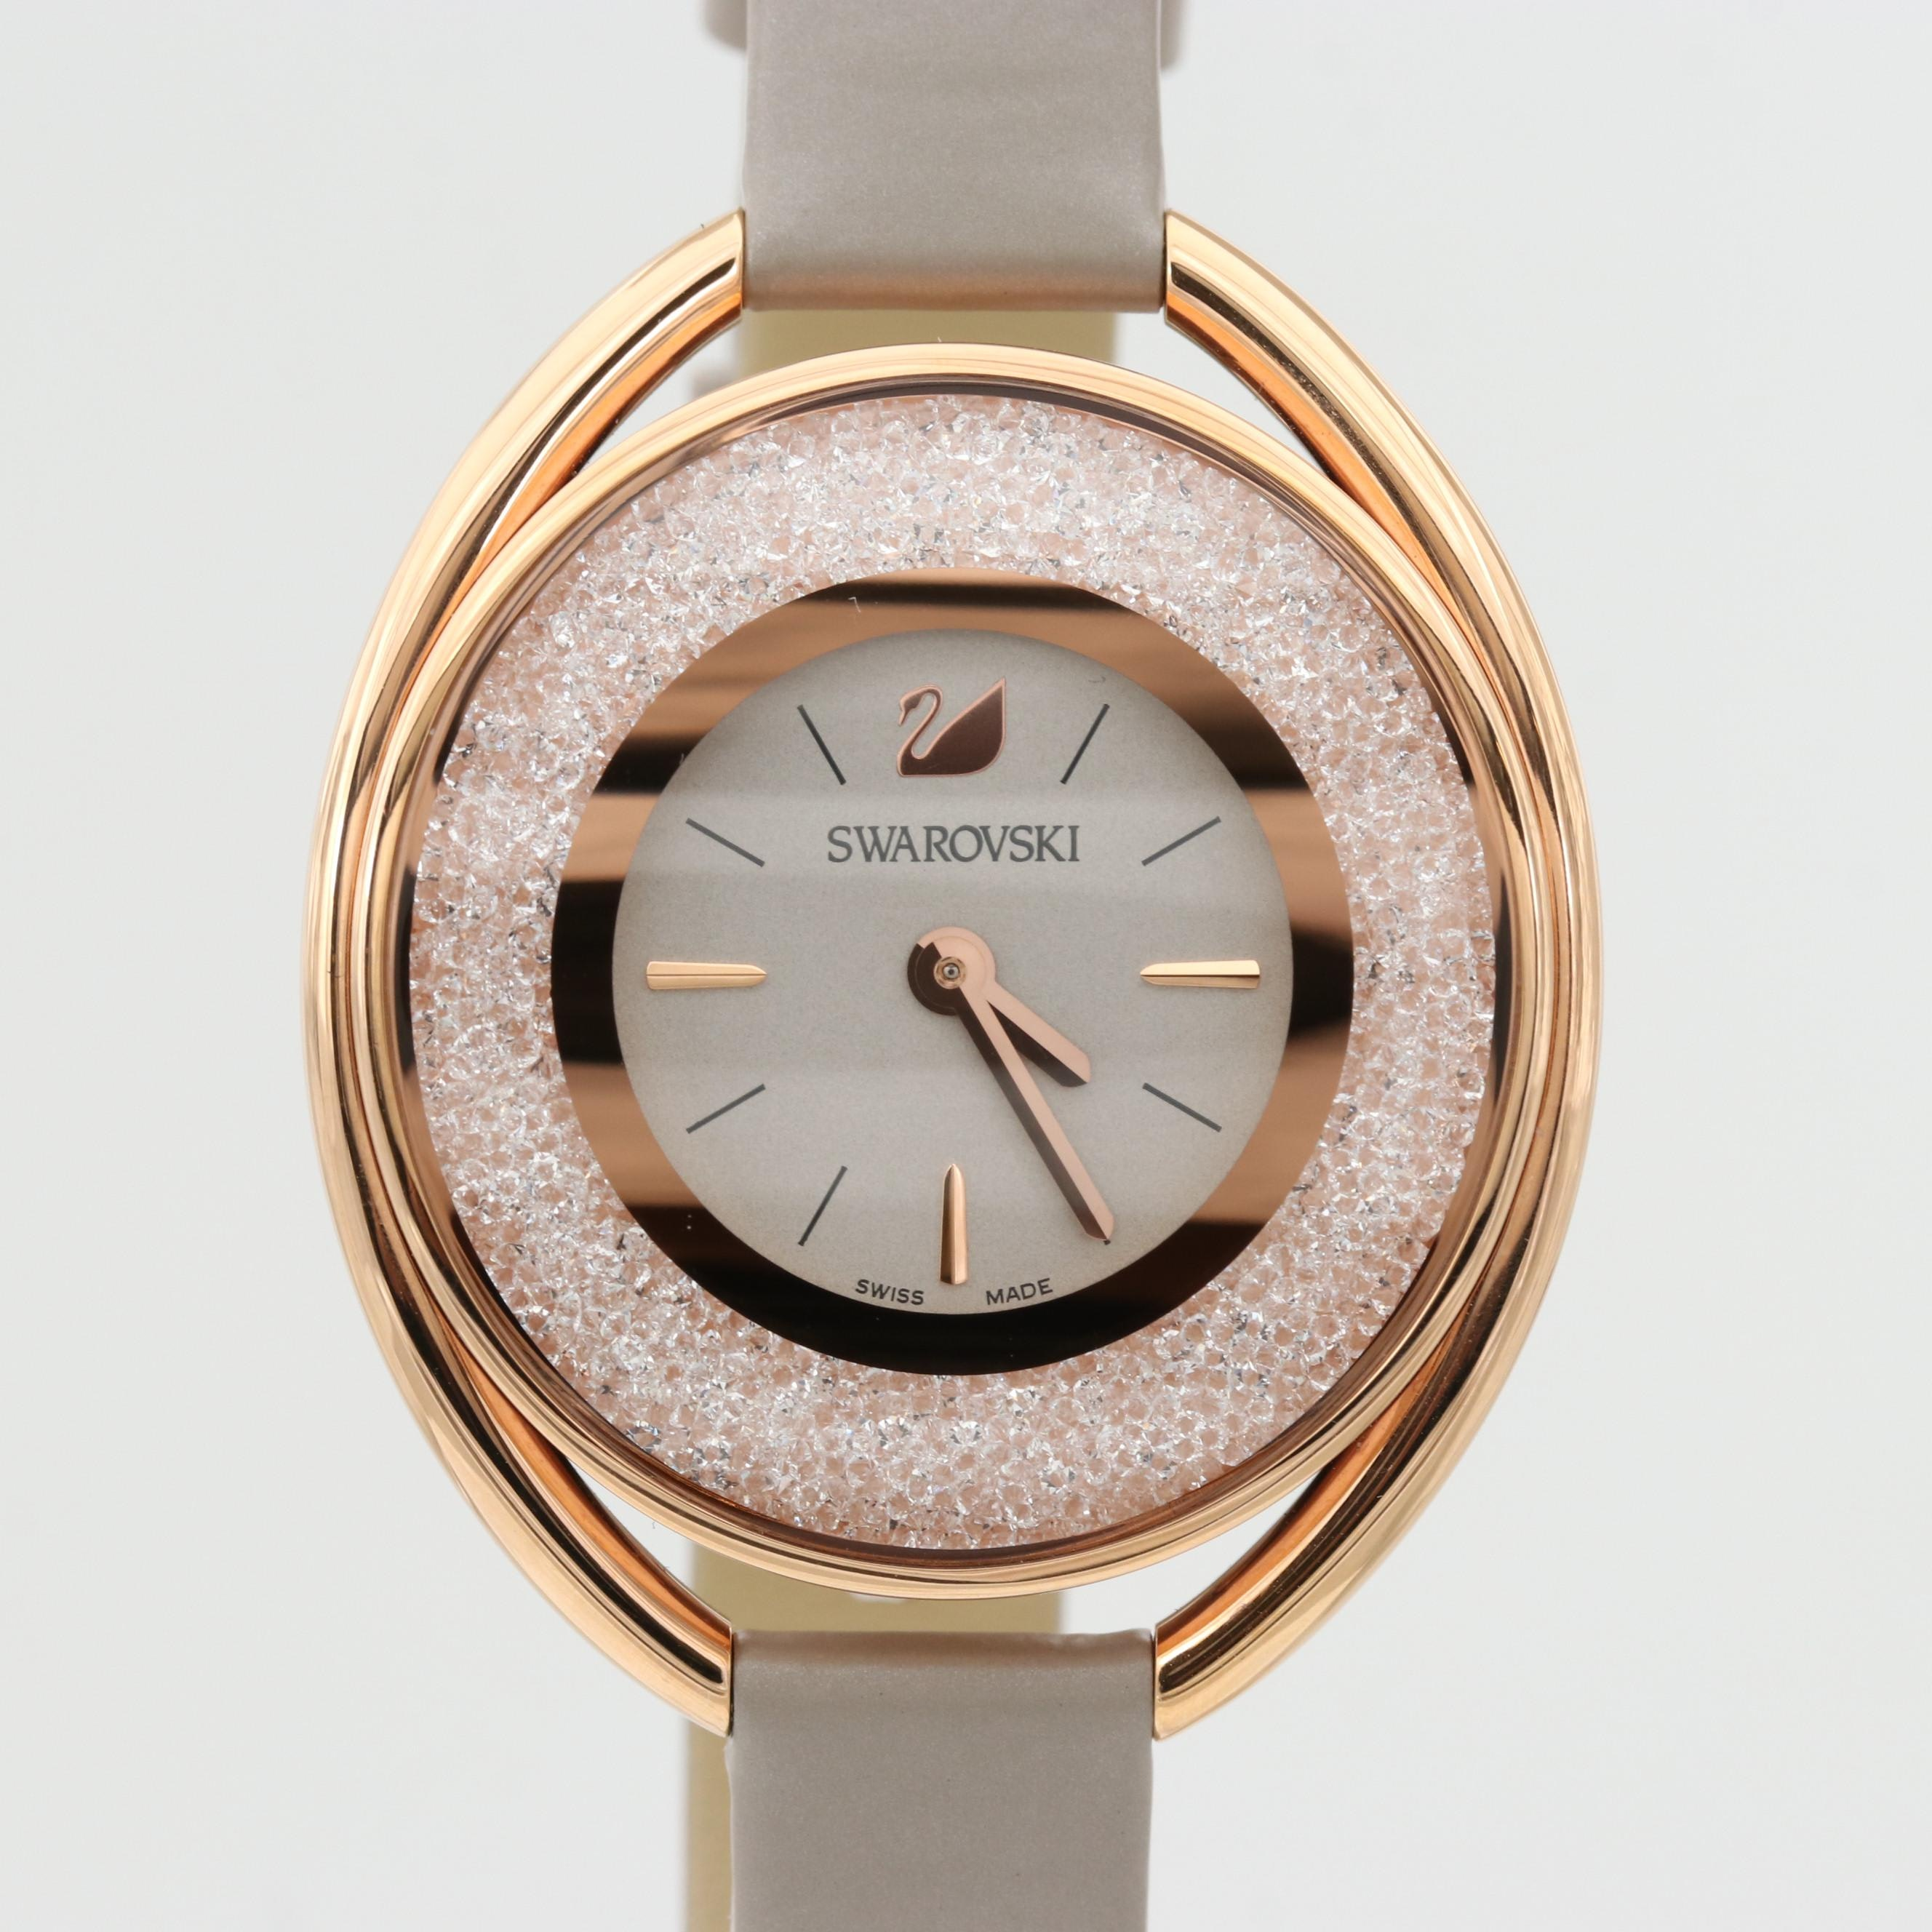 Swarovski Crystaline Oval Gold Tone Quartz Wristwatch With Swarovski Crystals